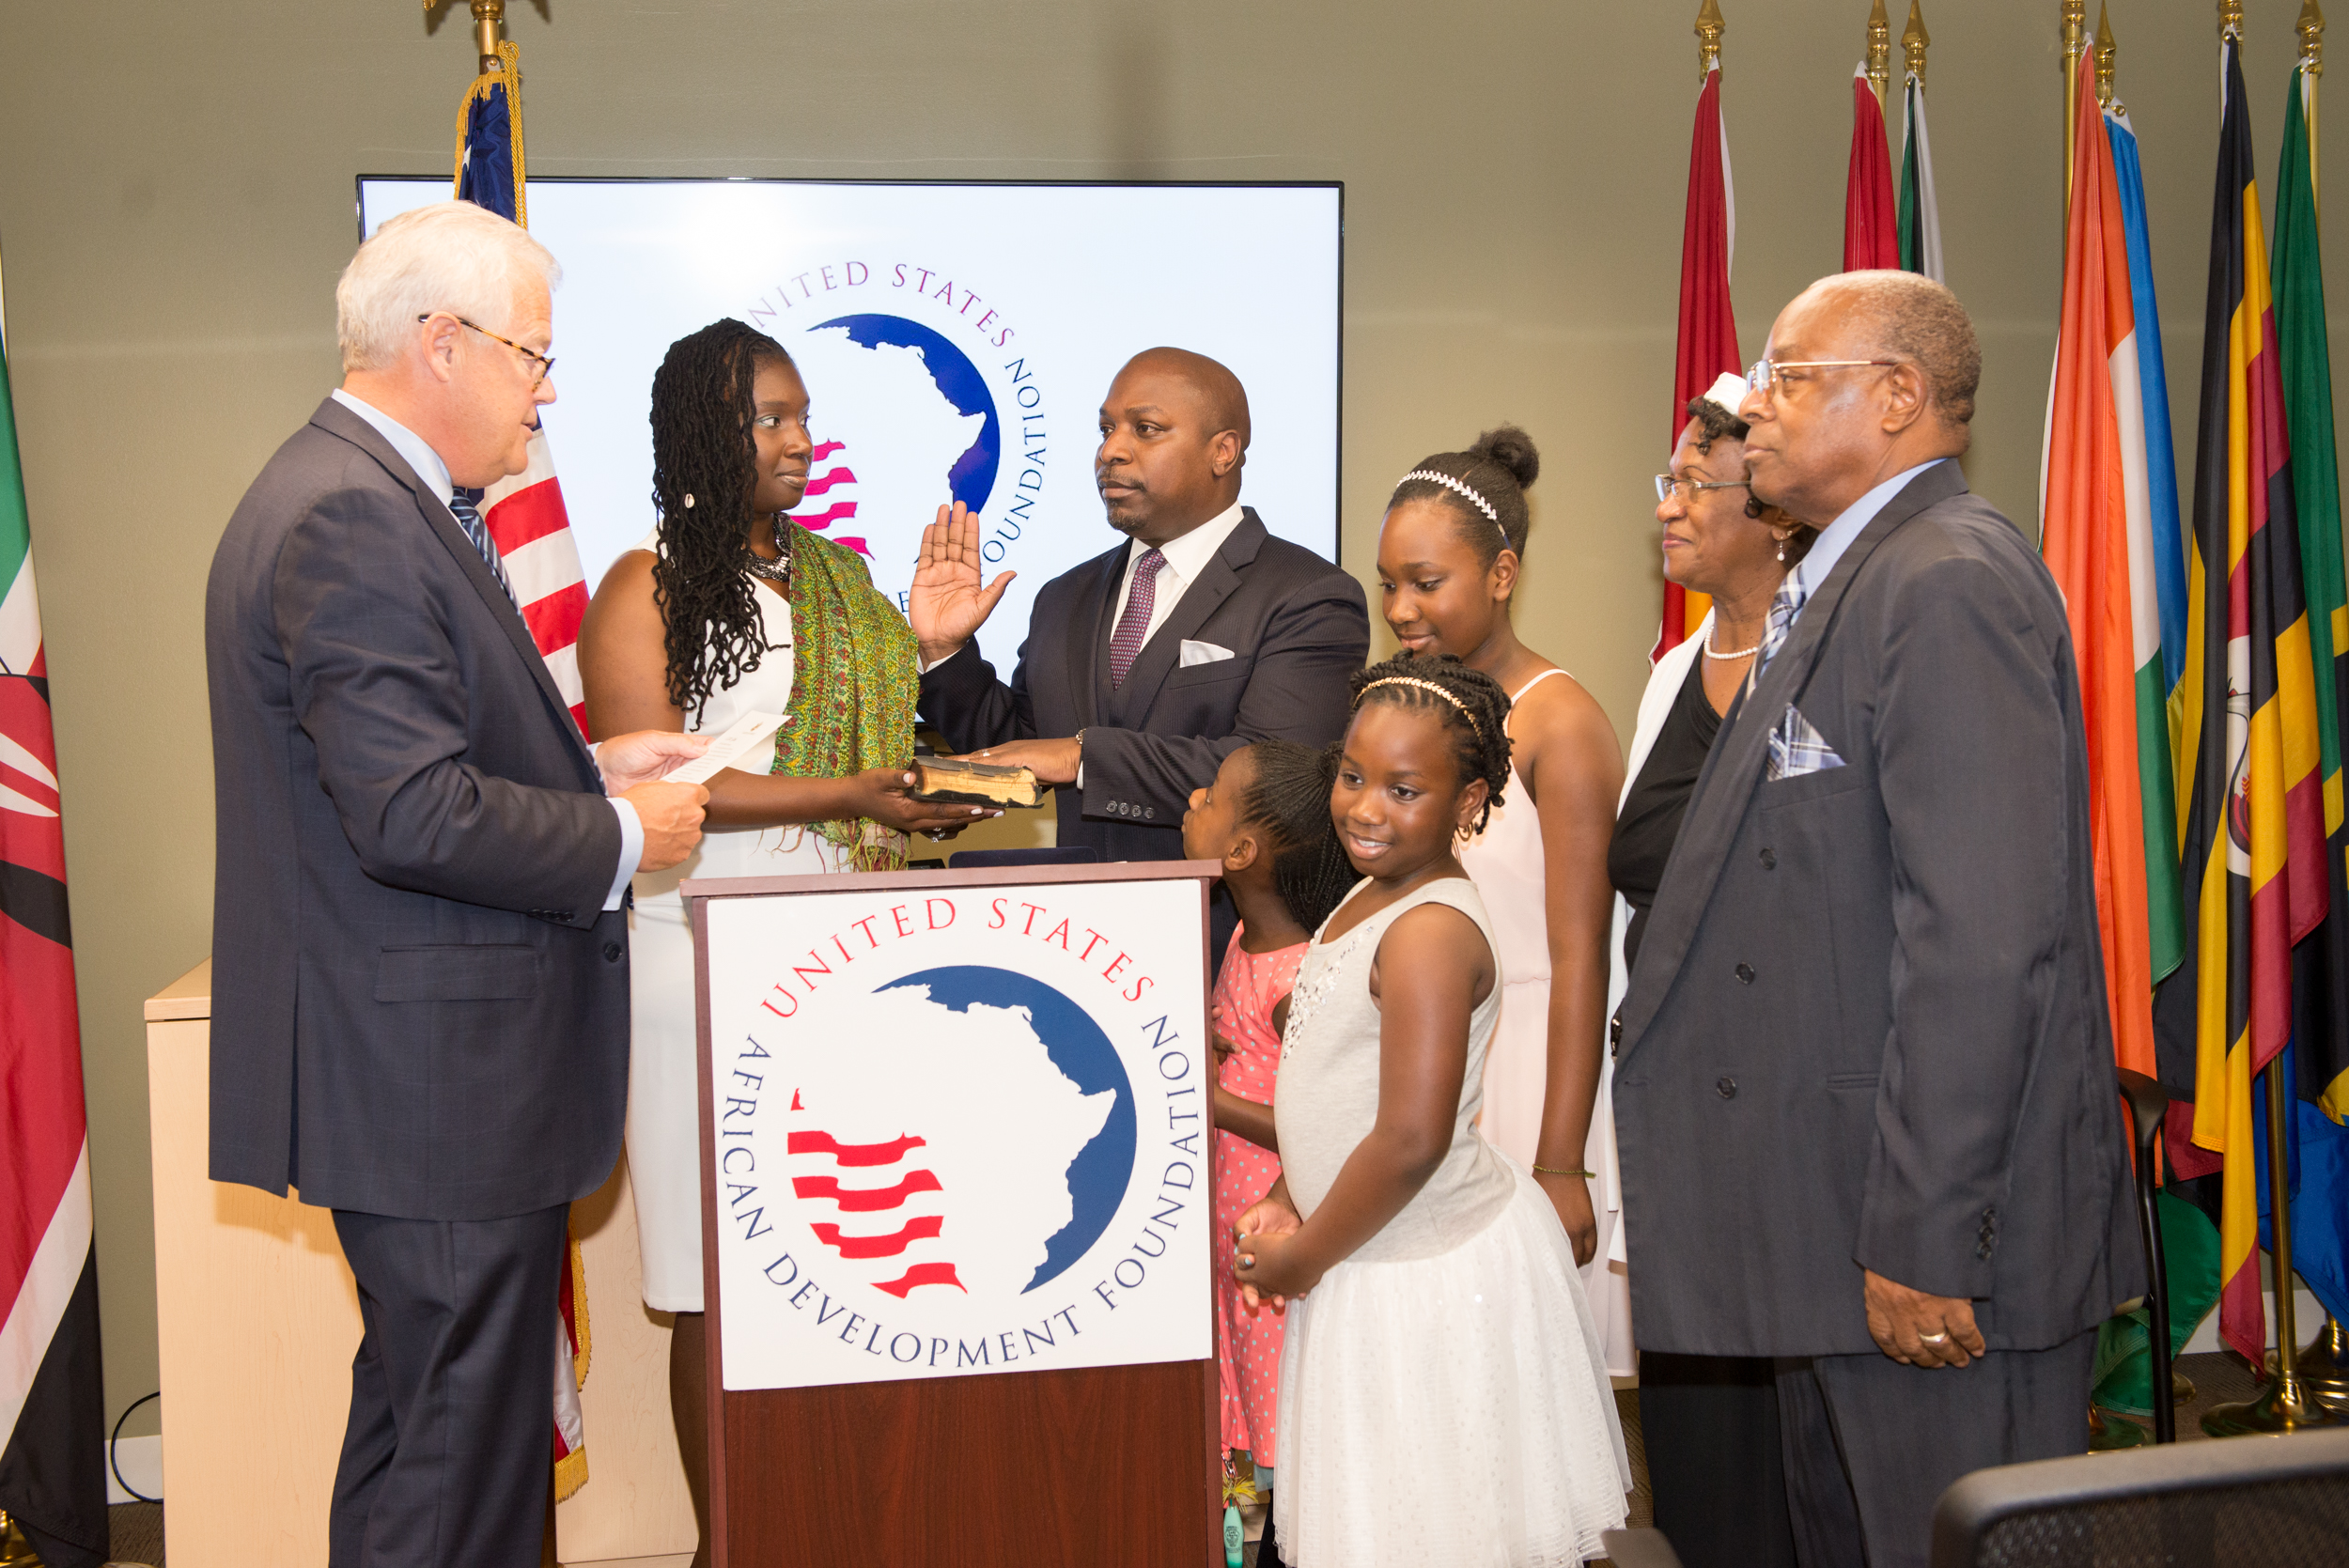 C.D. Glin being sworn in as 9th President/CEO by USADF Chairman Jack Leslie